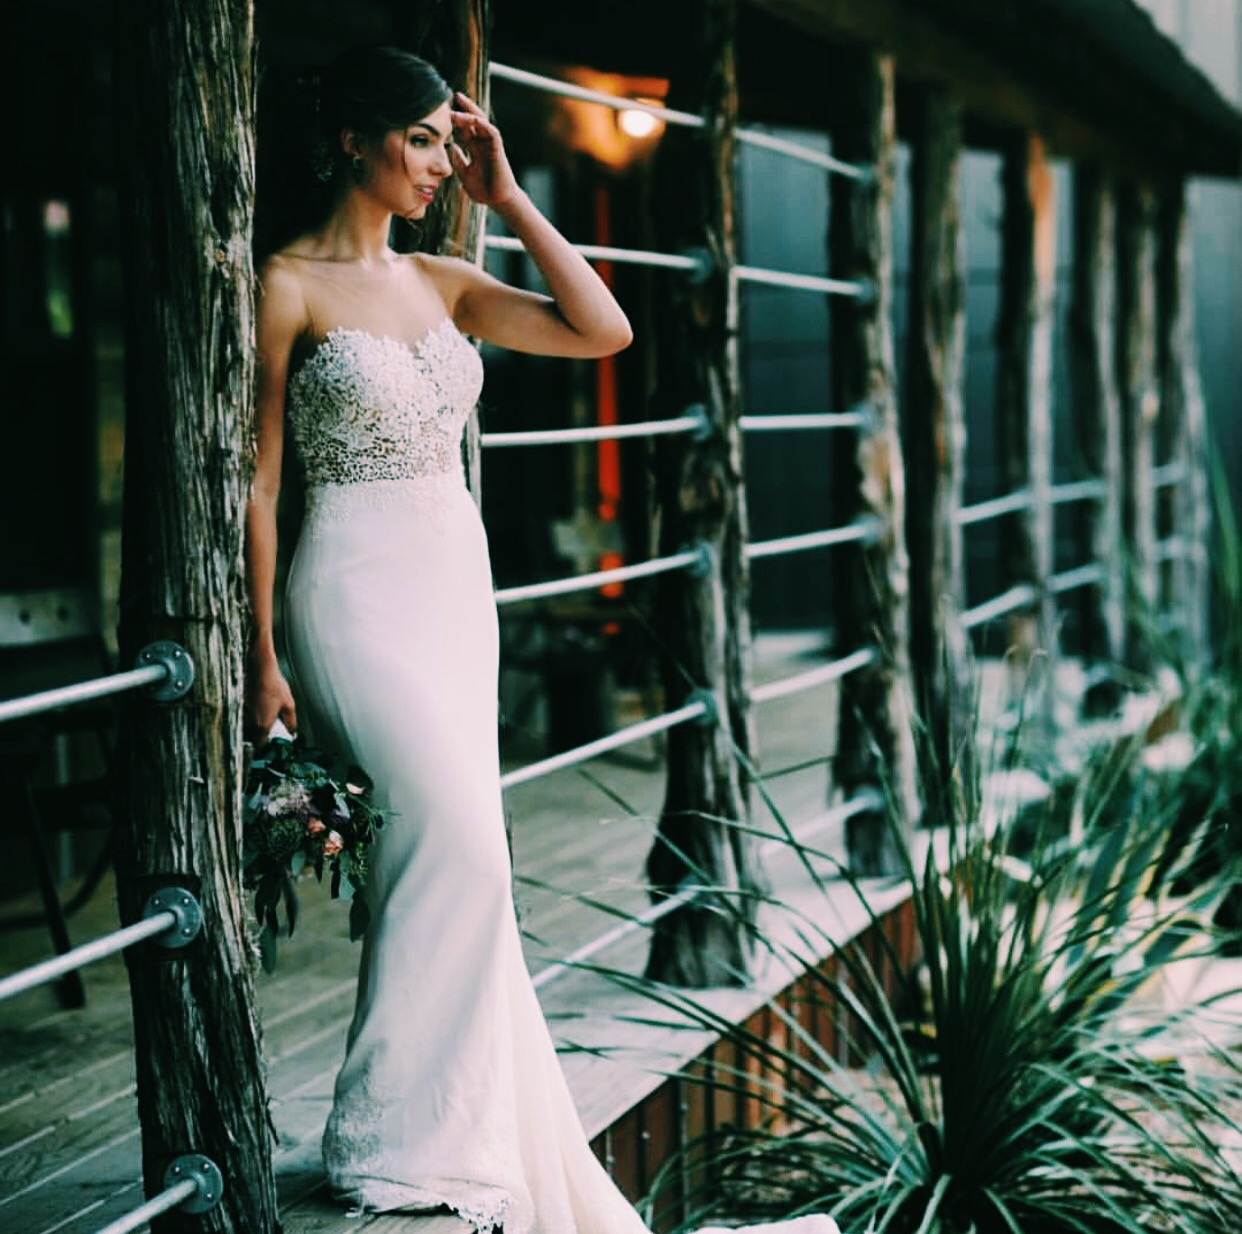 Greer Image Consulting - Where To Shop For The Perfect Wedding Dress in Austin, Texas - Raquel Talks About Where To Shop For A Wedding Dress In Austin, Texas